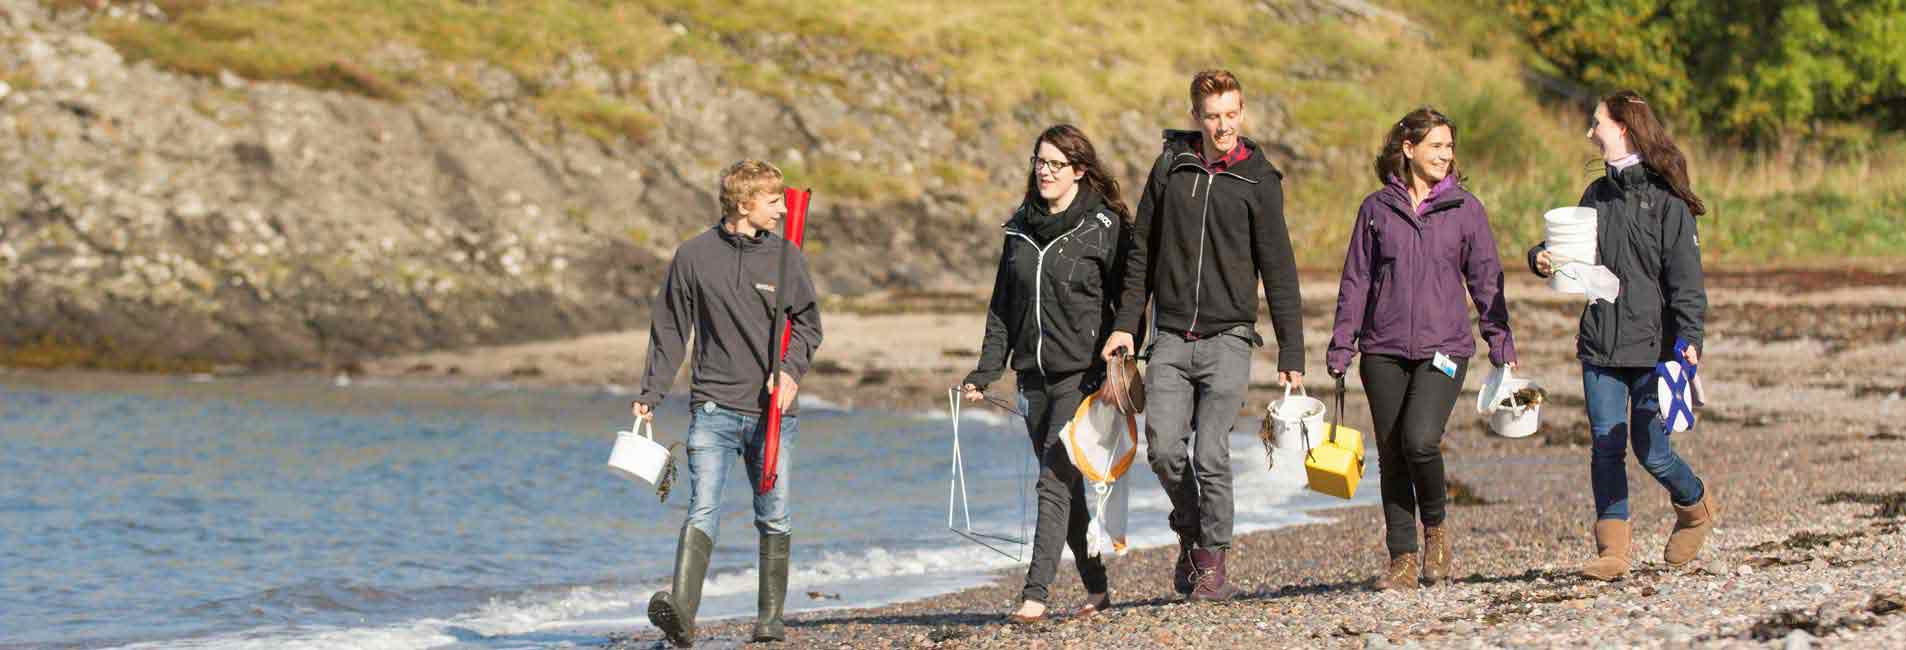 The picture shows a group of fresh-faced marine science undergraduate students walking on the beach with some of their fieldwork equipment